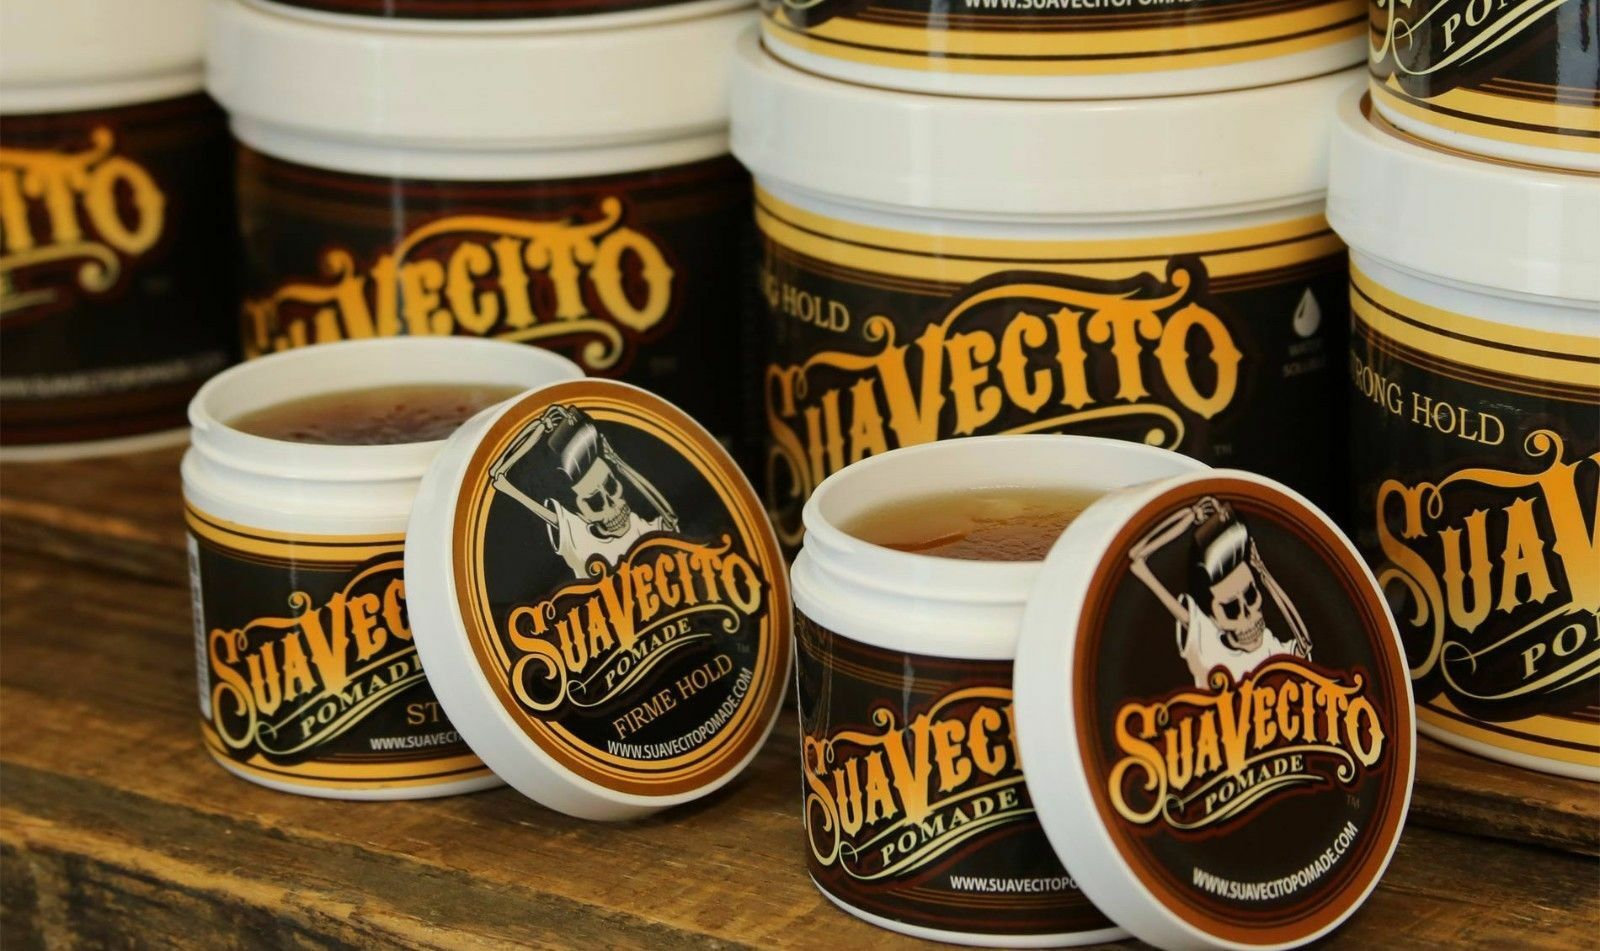 Suavecito Pomade Firme Strong Hold Hairstyles Hair Gel Wax Original Made In Usa Ointment 1 Of 5free Shipping